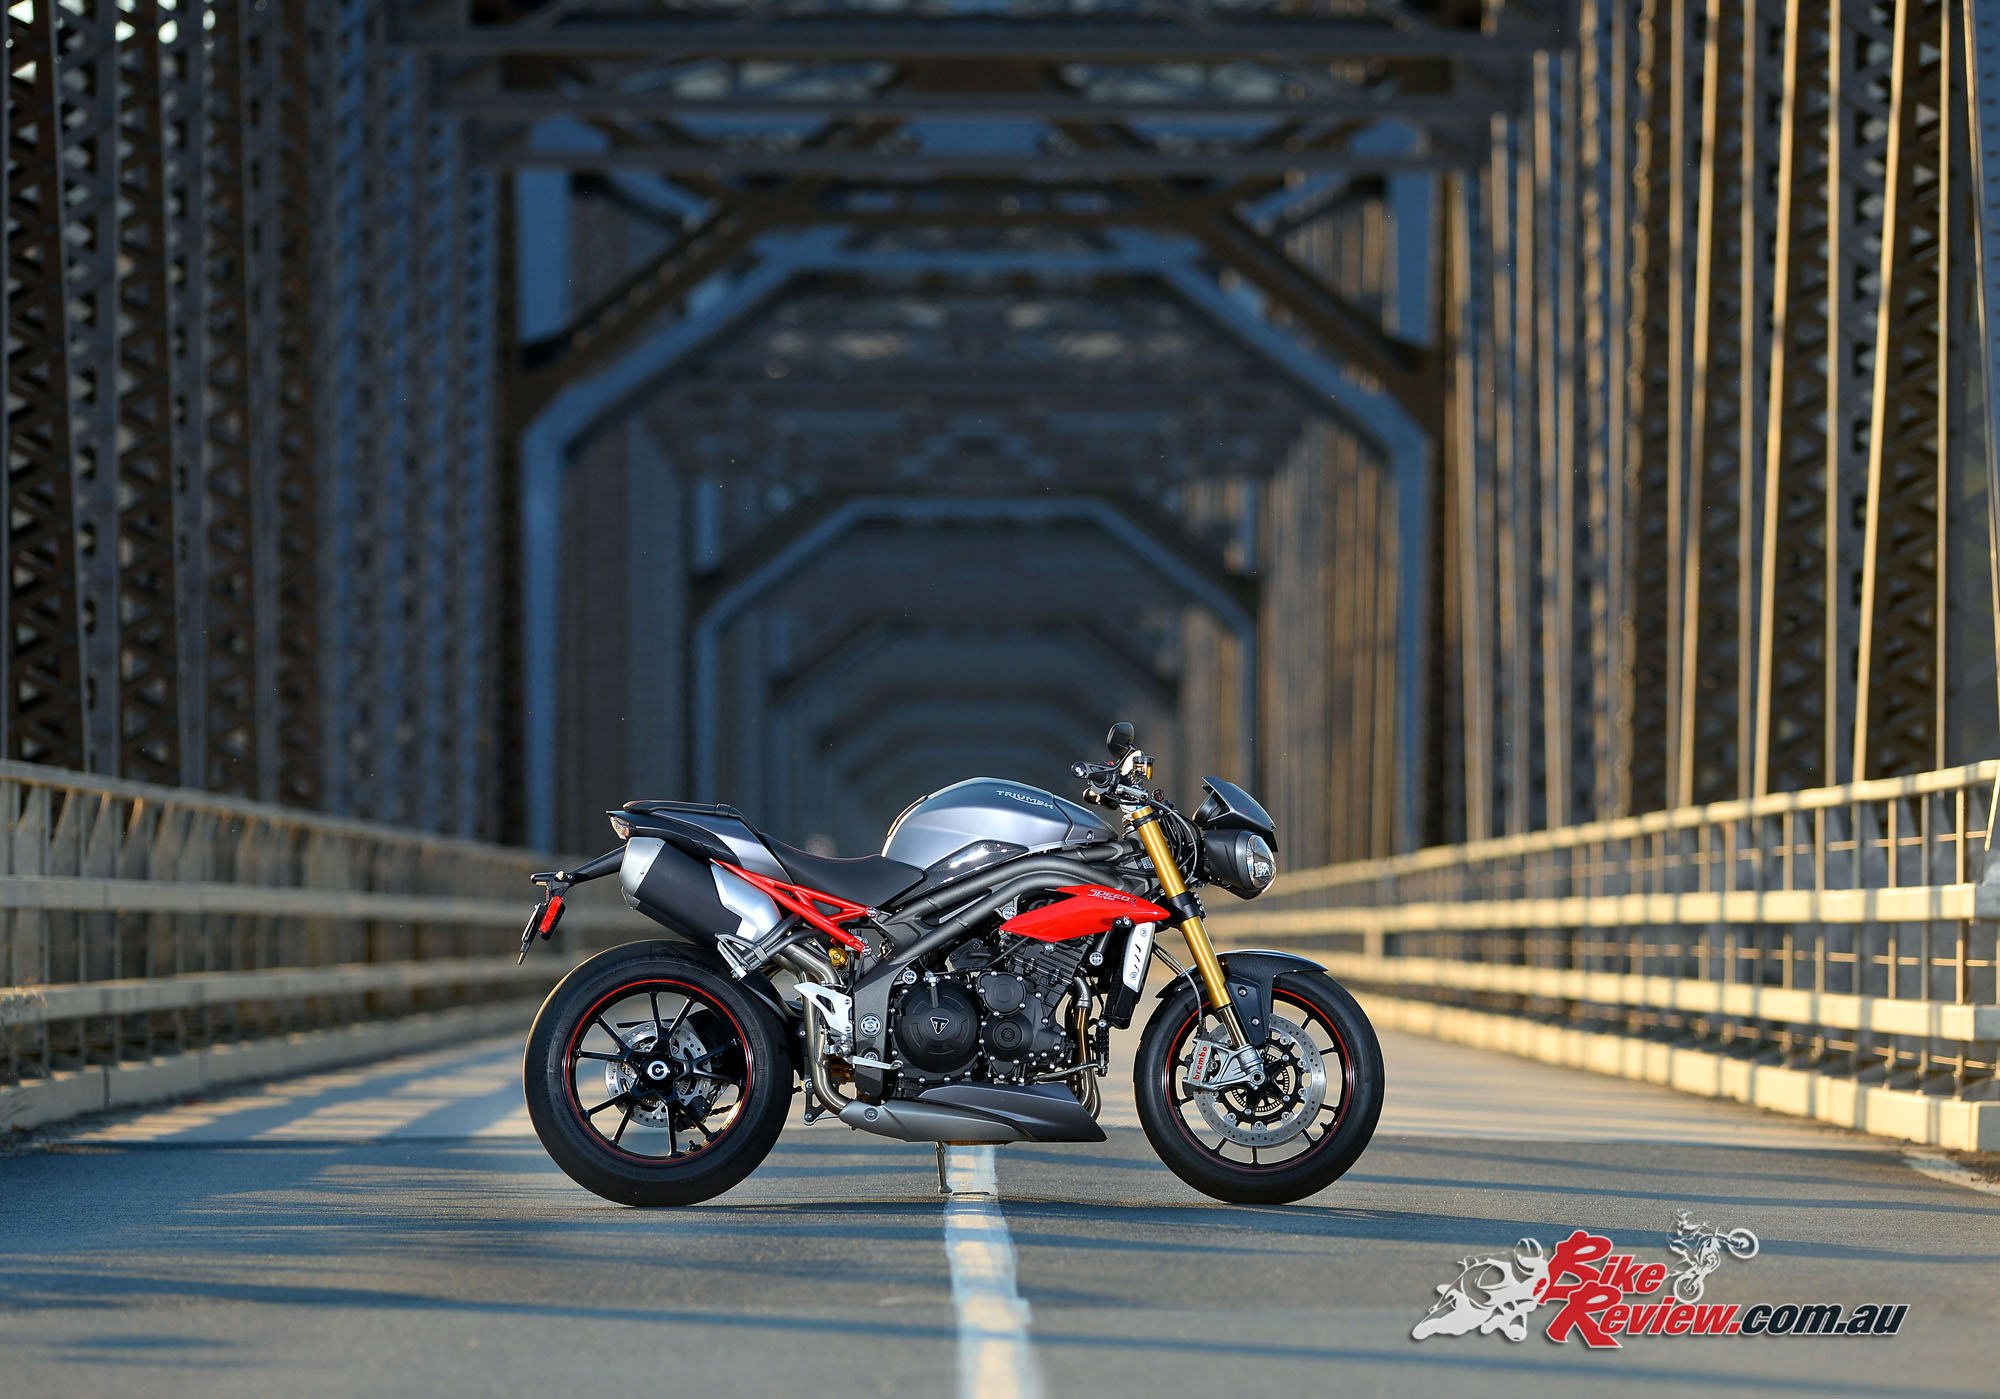 2016 triumph speed triple launch review - bike review